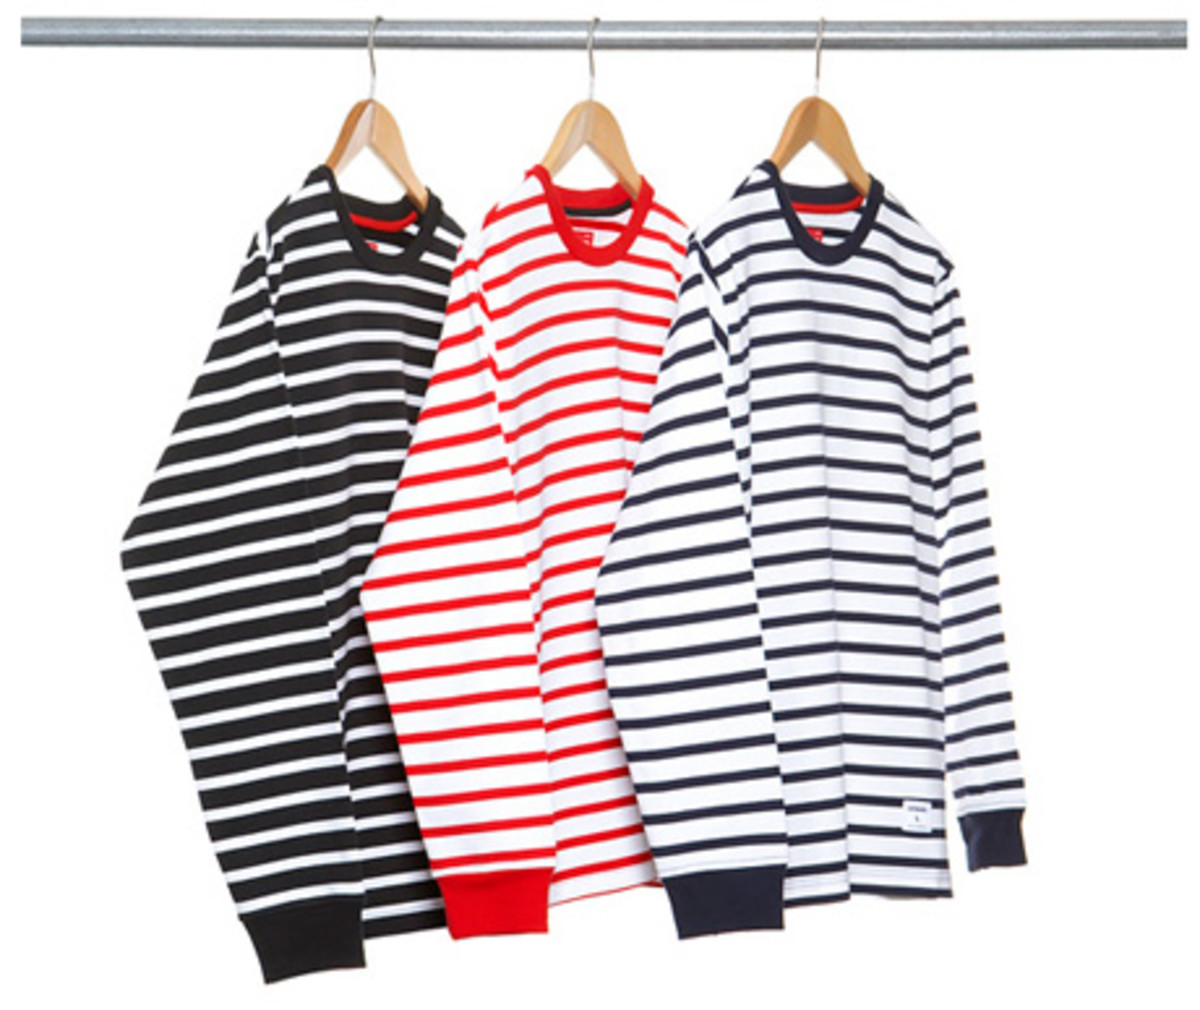 Supreme - Fall/Winter 2008 - T-Shirts + Knits - 8